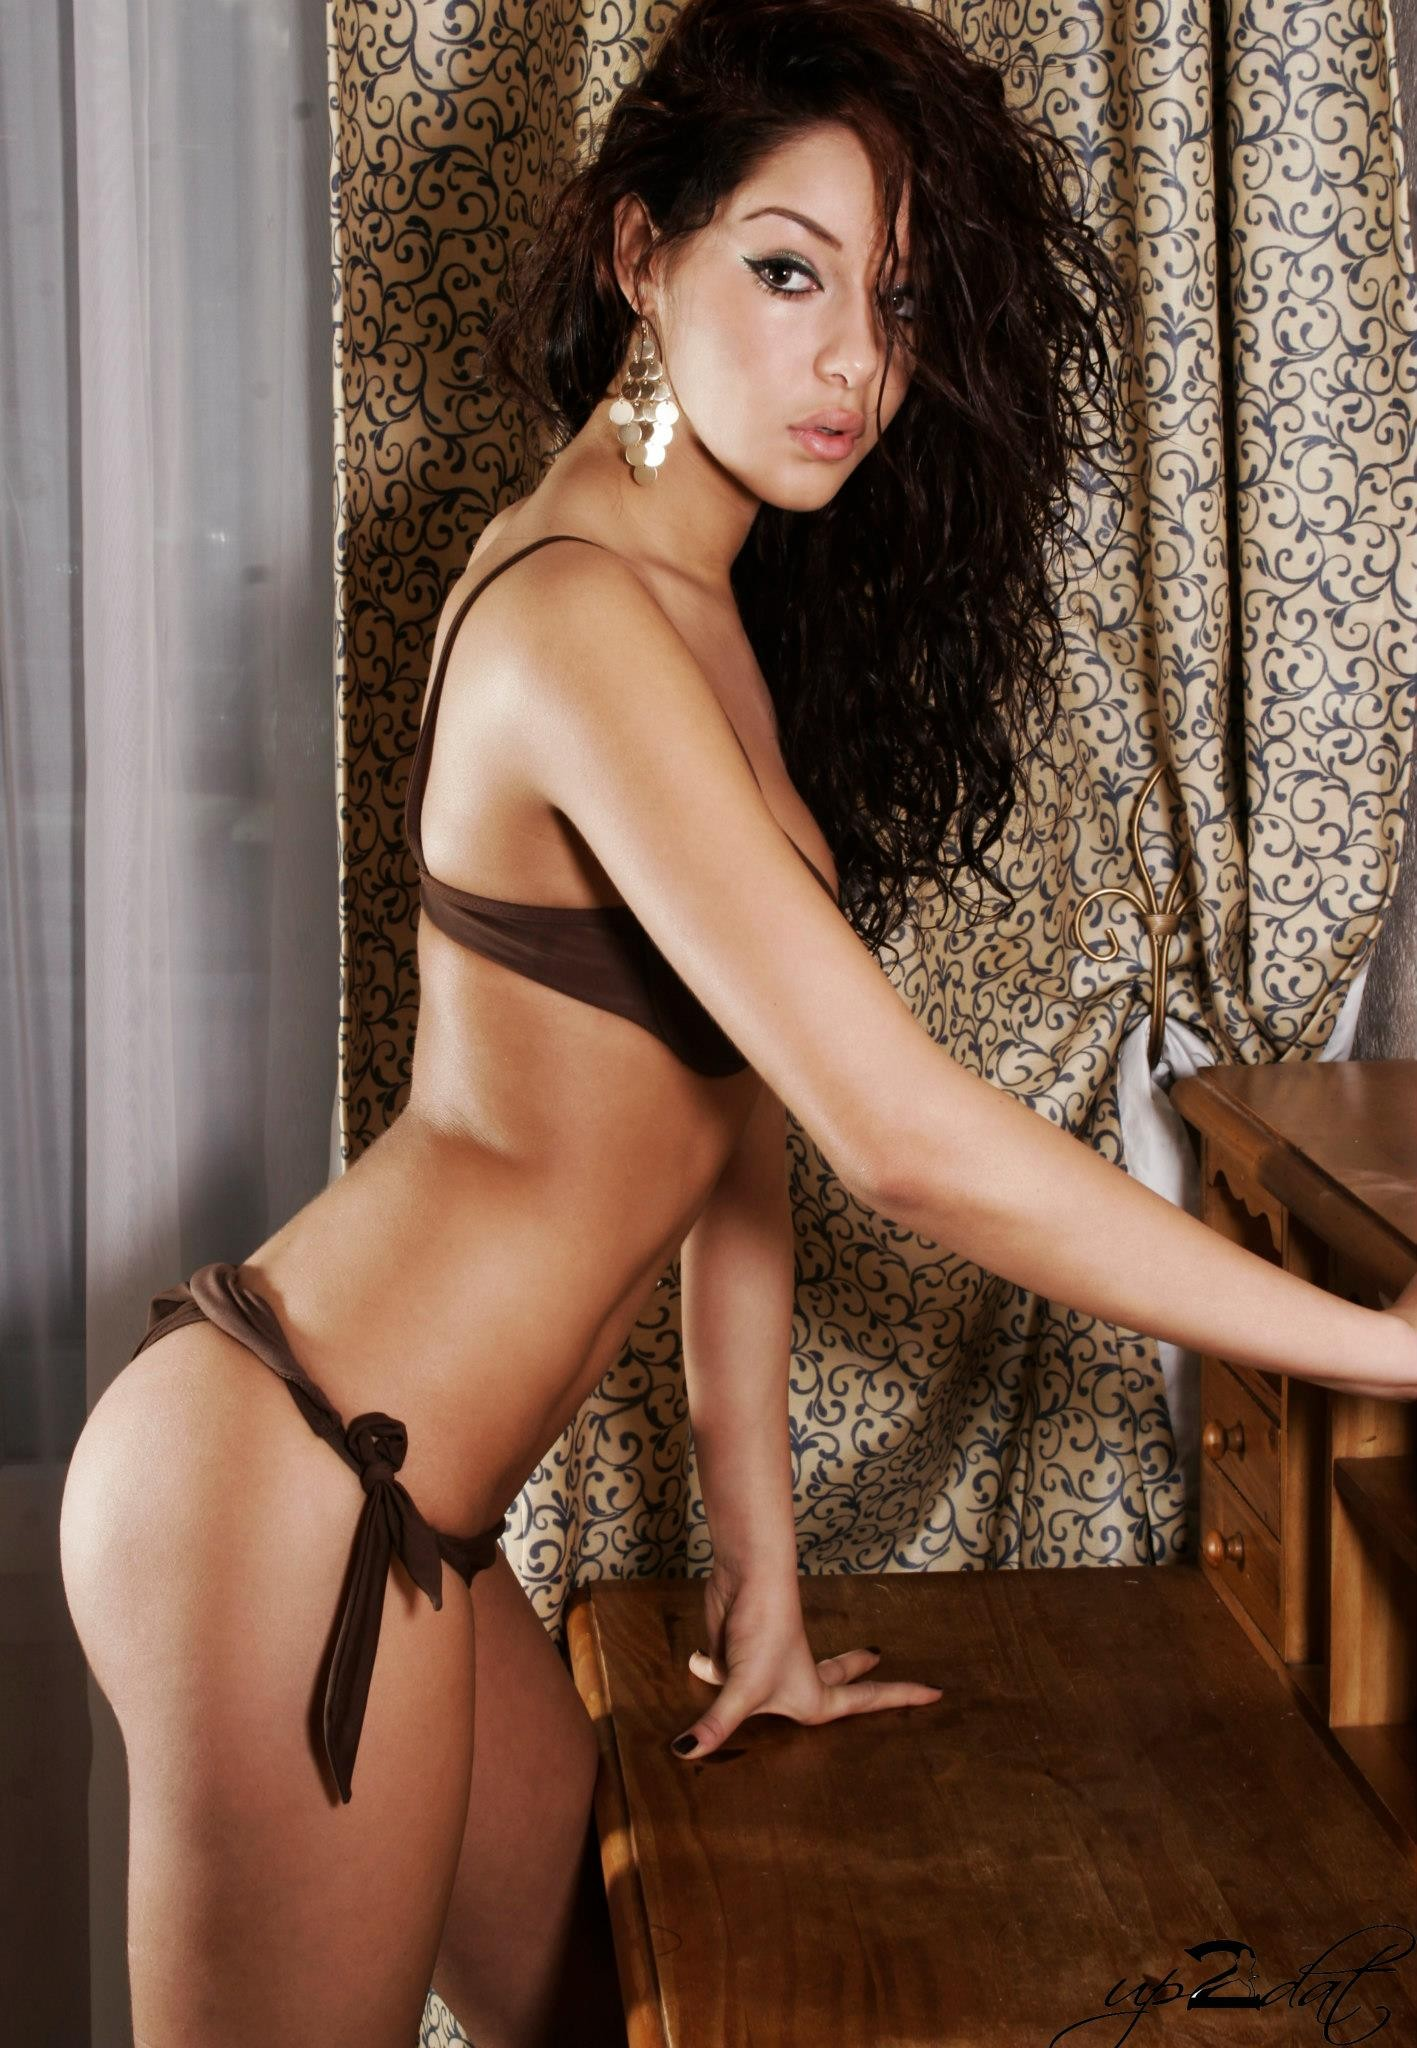 Nabilla Benattia nude - Page 4 pictures, naked, oops ...